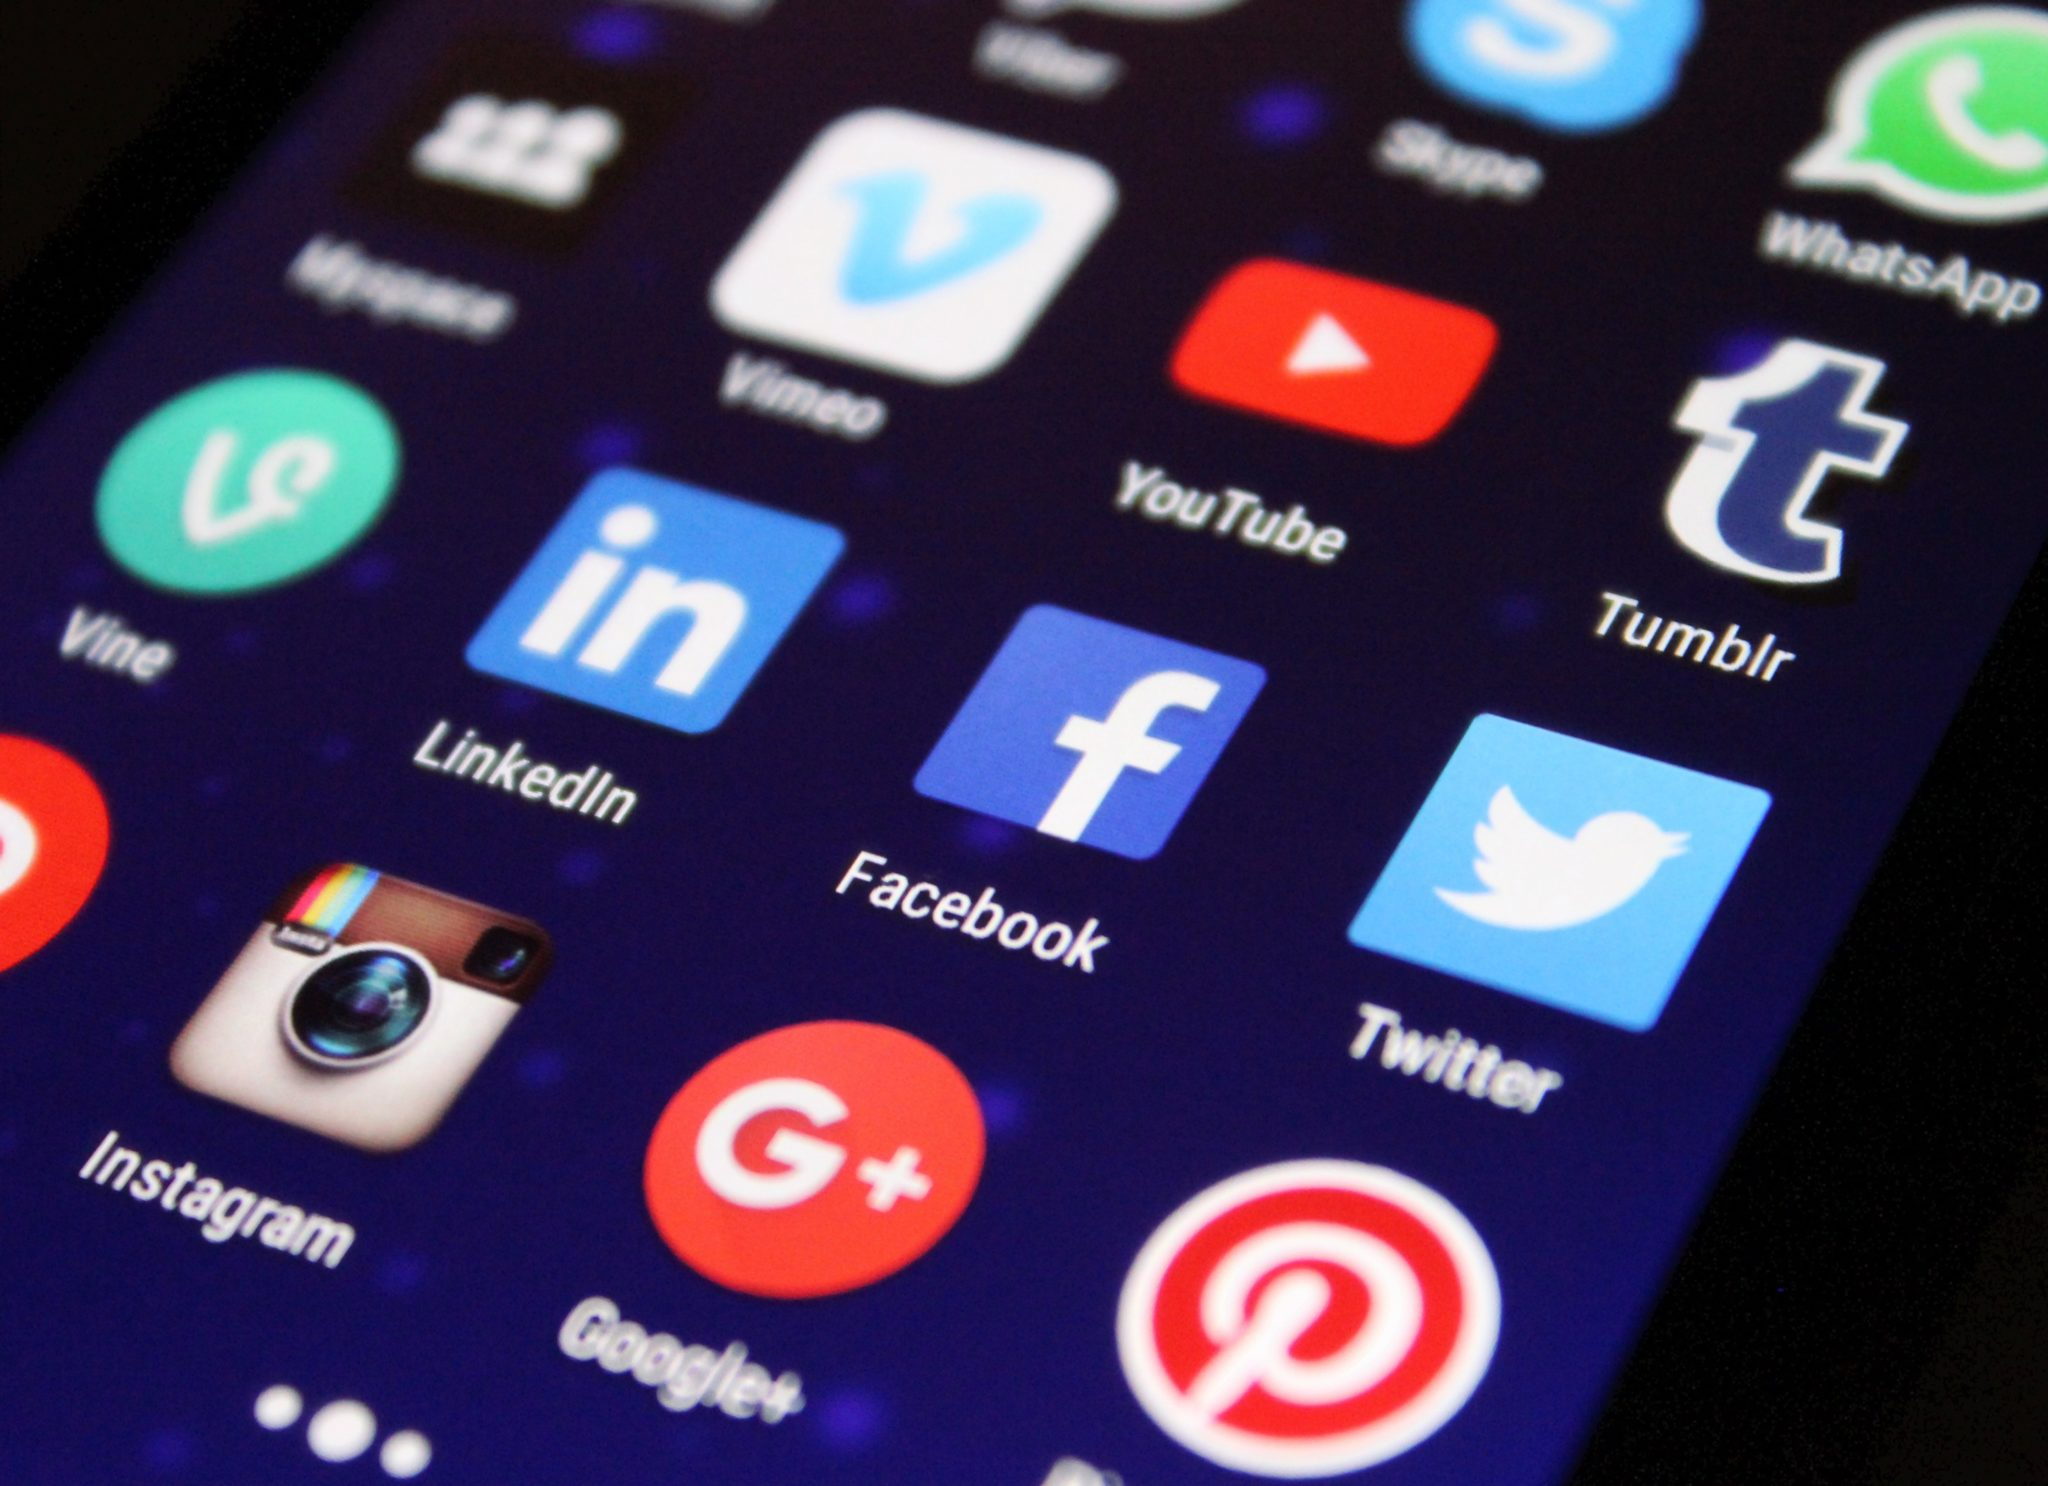 Close up of phone screen showing social media apps.